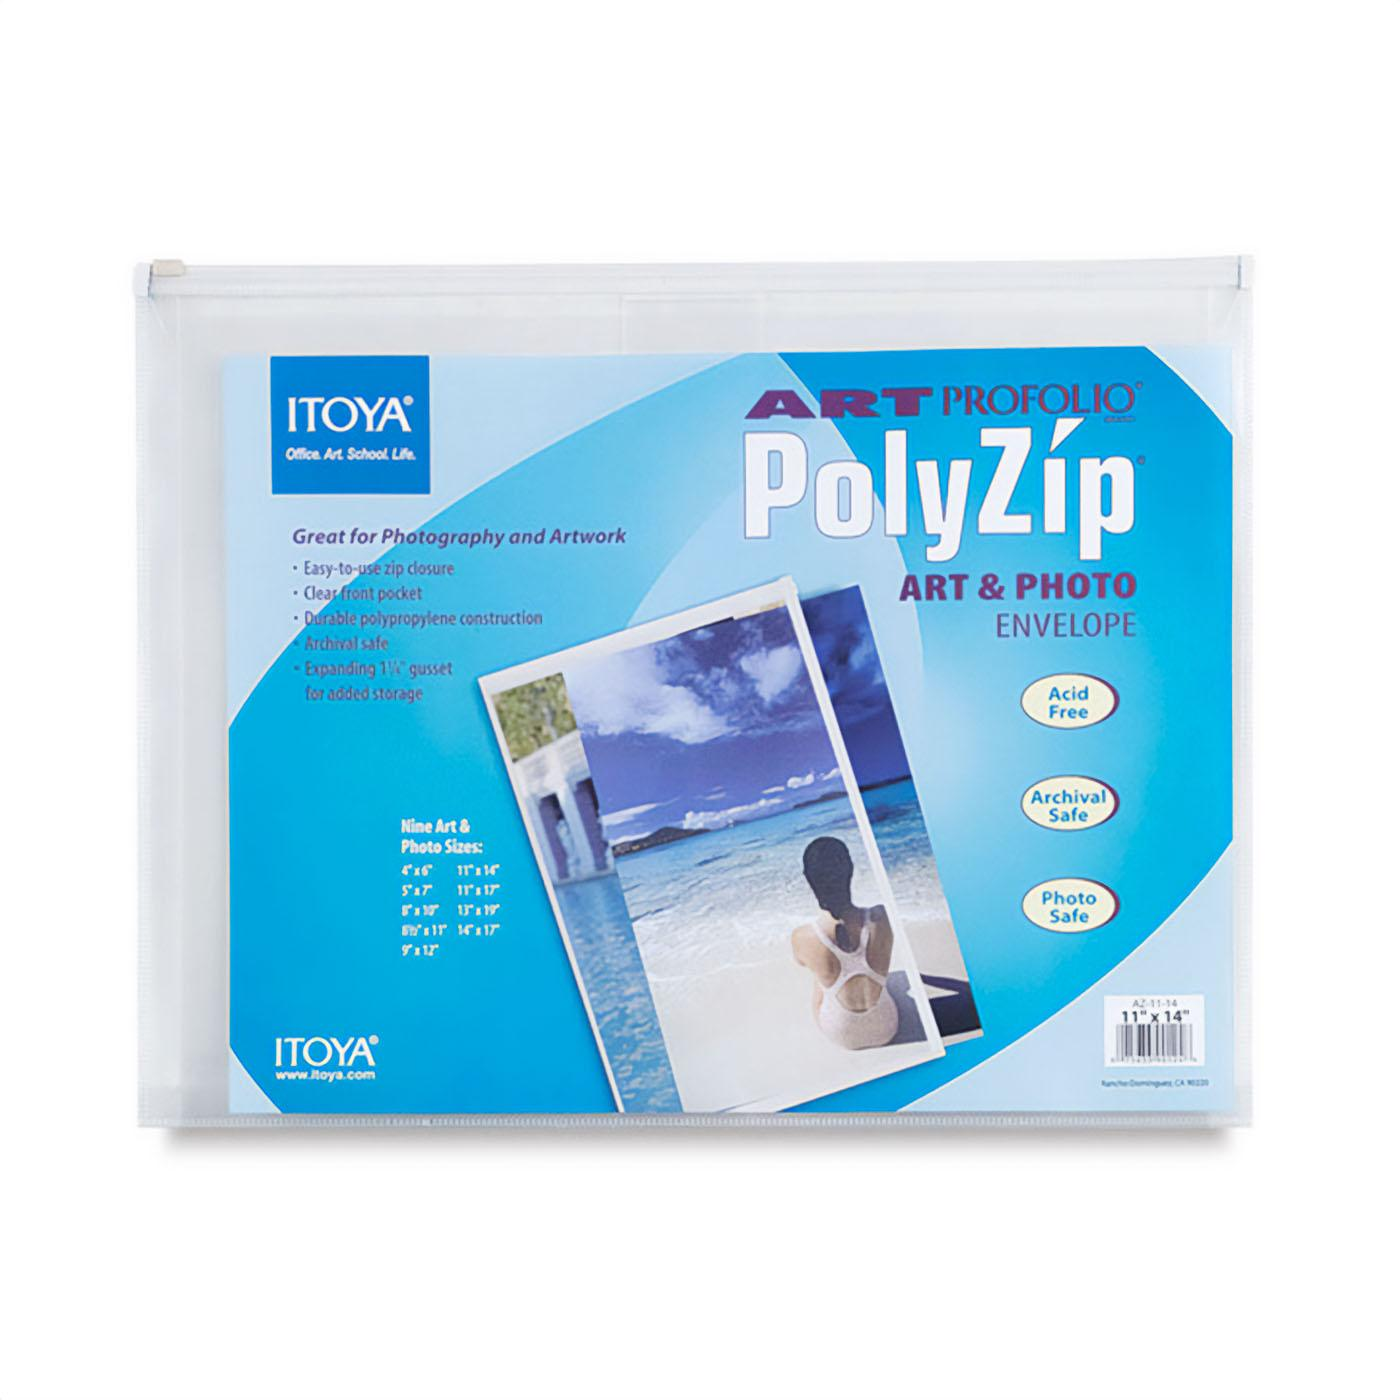 Itoya Art Portolio PolyZip Envelope – Dimension 11x14